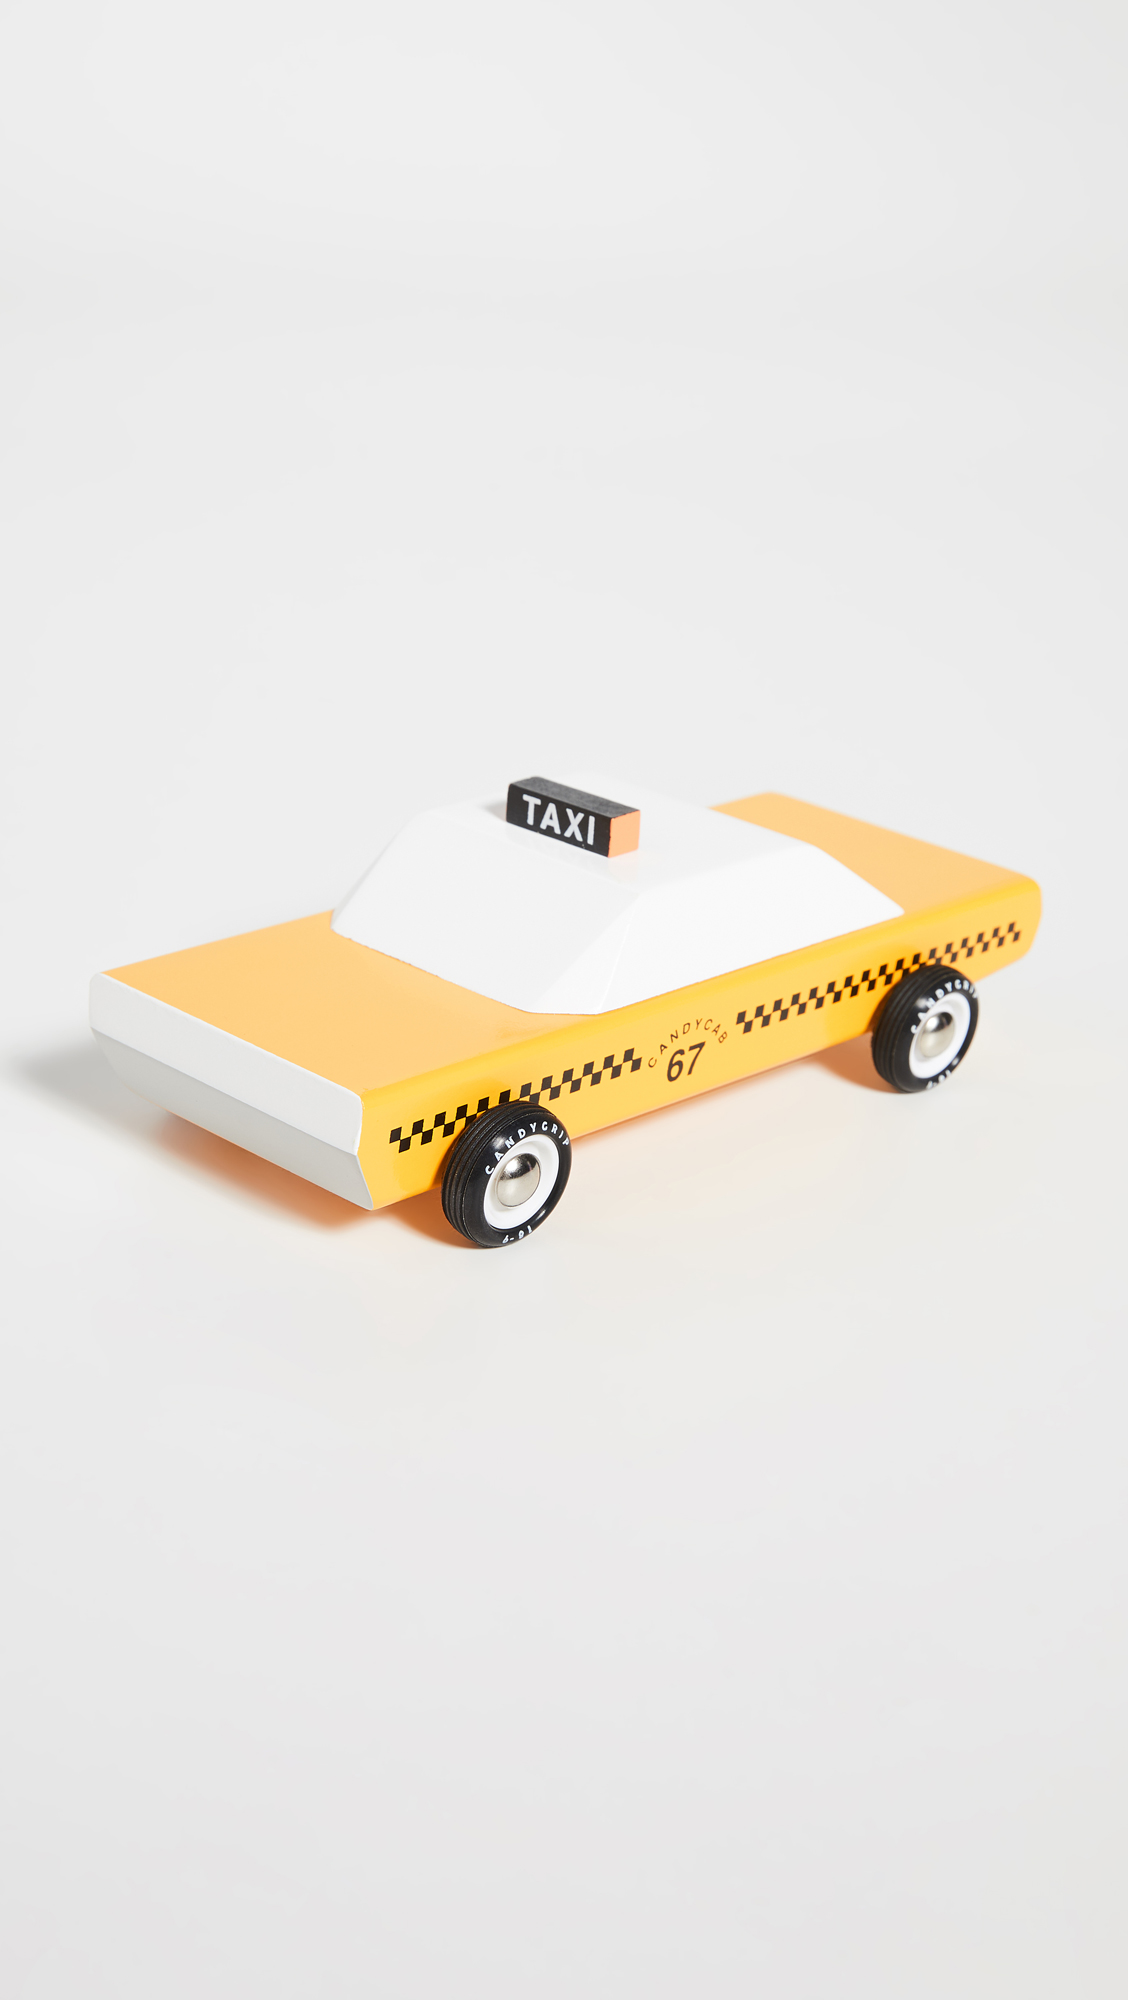 Wooden Taxi Cab Toy Car